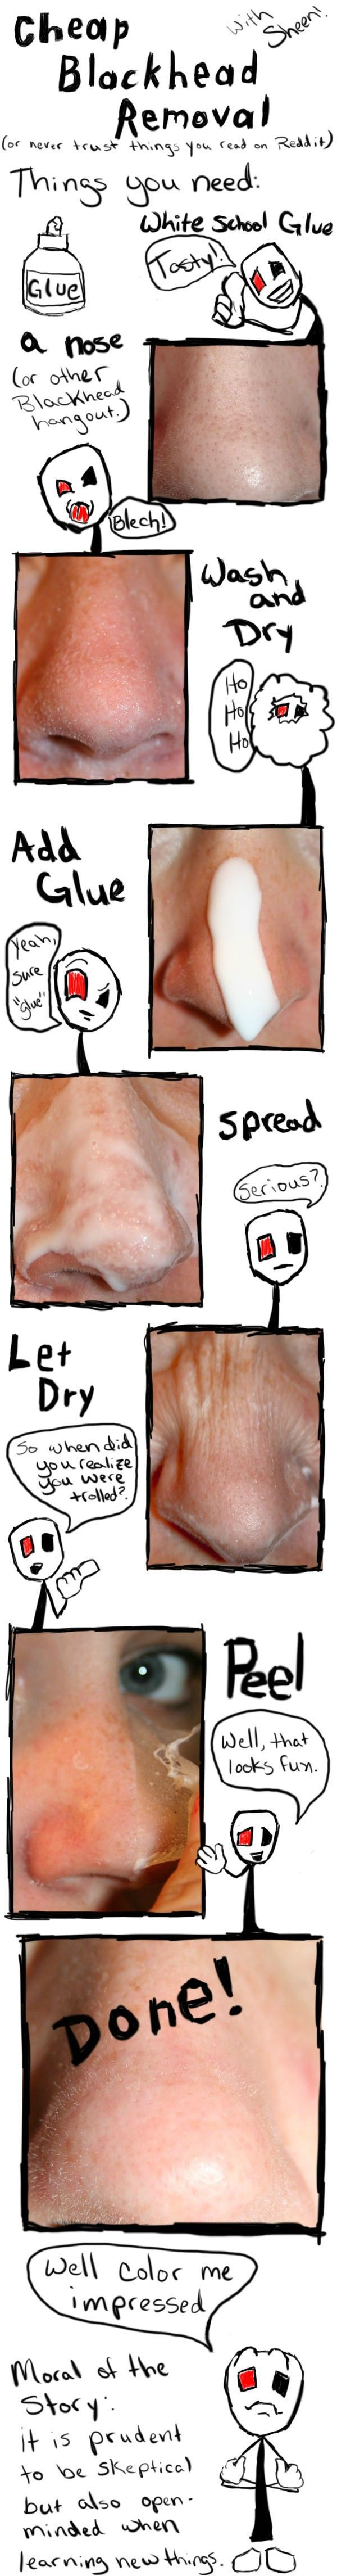 15 Hacks, Tips, And Tricks To Get Rid Of Blackheads